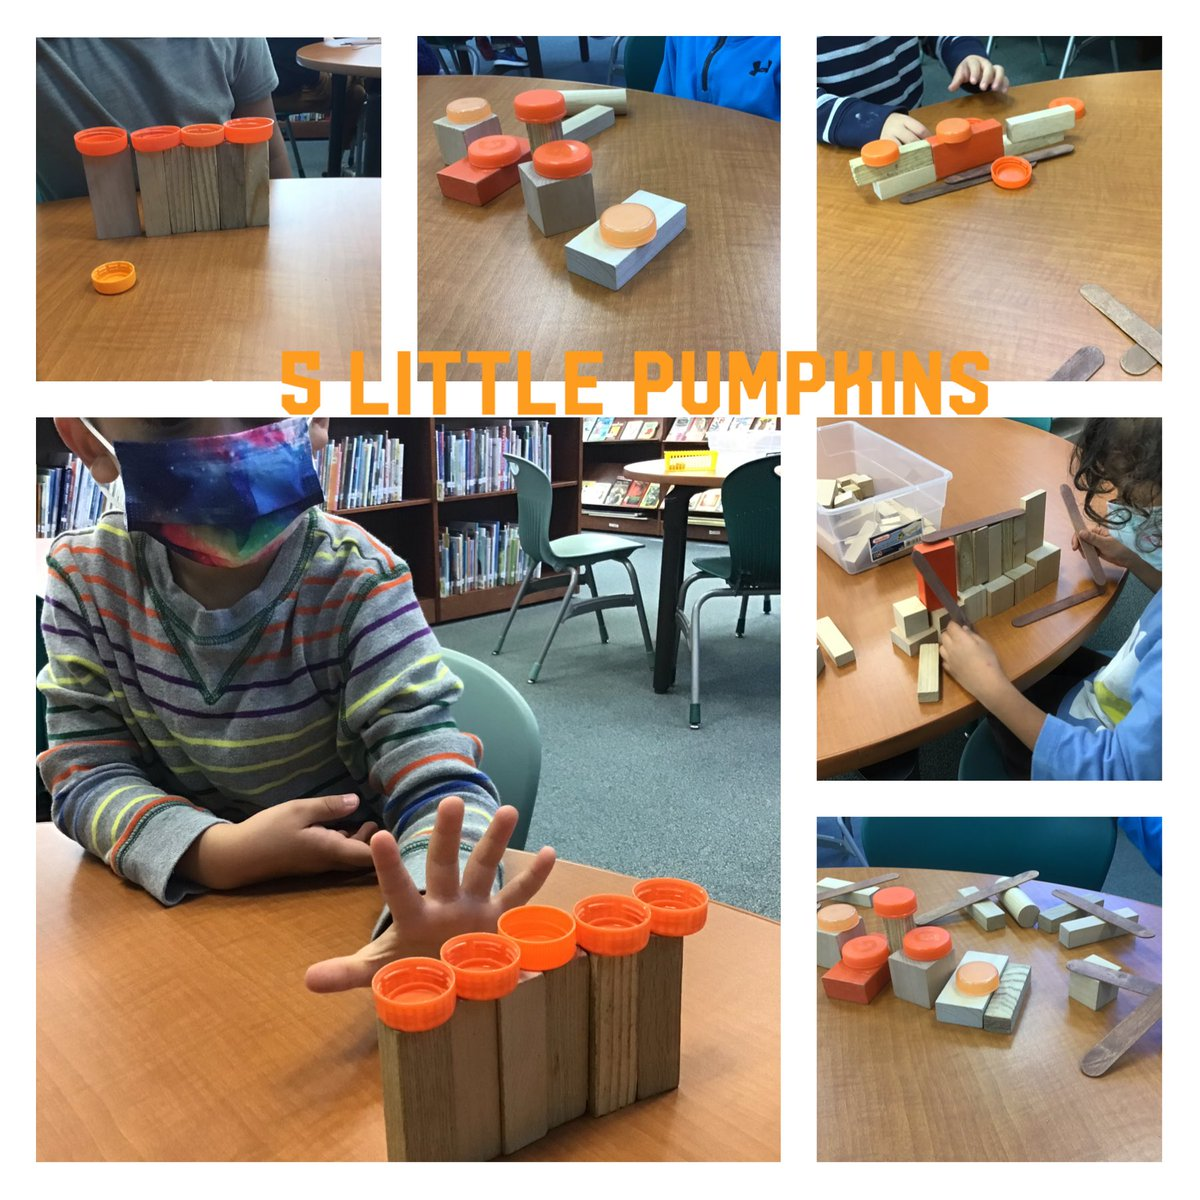 Pre-K students are building fences for their 5 Little Pumpkins! <a target='_blank' href='http://twitter.com/NTMKnightsAPS'>@NTMKnightsAPS</a> <a target='_blank' href='http://twitter.com/NottinghamPTA'>@NottinghamPTA</a>  <a target='_blank' href='http://search.twitter.com/search?q=ntmSTEAM'><a target='_blank' href='https://twitter.com/hashtag/ntmSTEAM?src=hash'>#ntmSTEAM</a></a> <a target='_blank' href='https://t.co/Cp3XsPoEPU'>https://t.co/Cp3XsPoEPU</a>